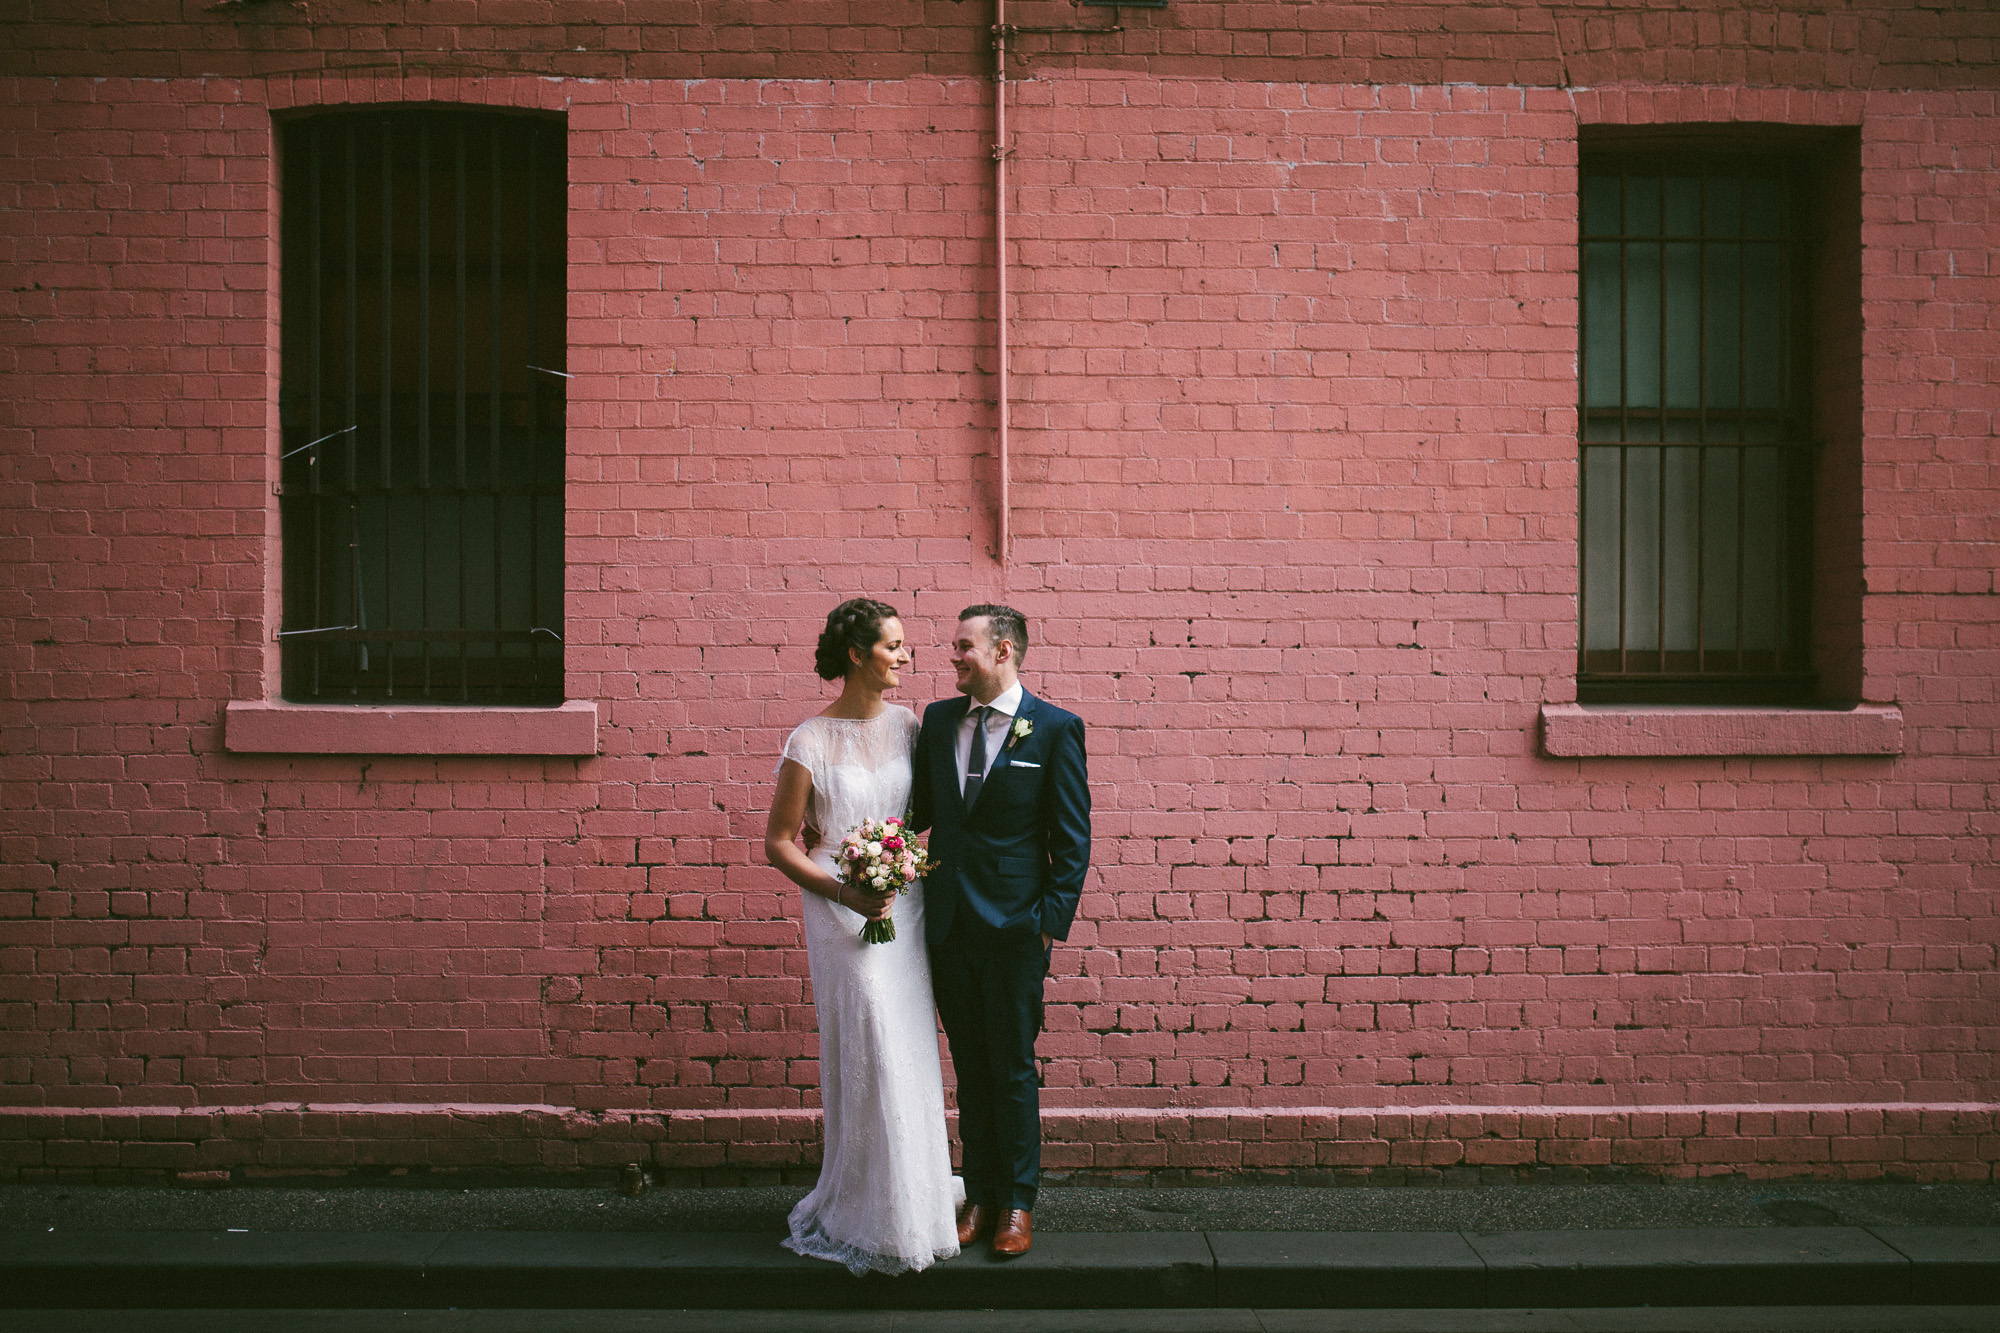 Jason-Charlotte-Melbourne-Quirky-Urban-Alternative-Wedding-Photography-31